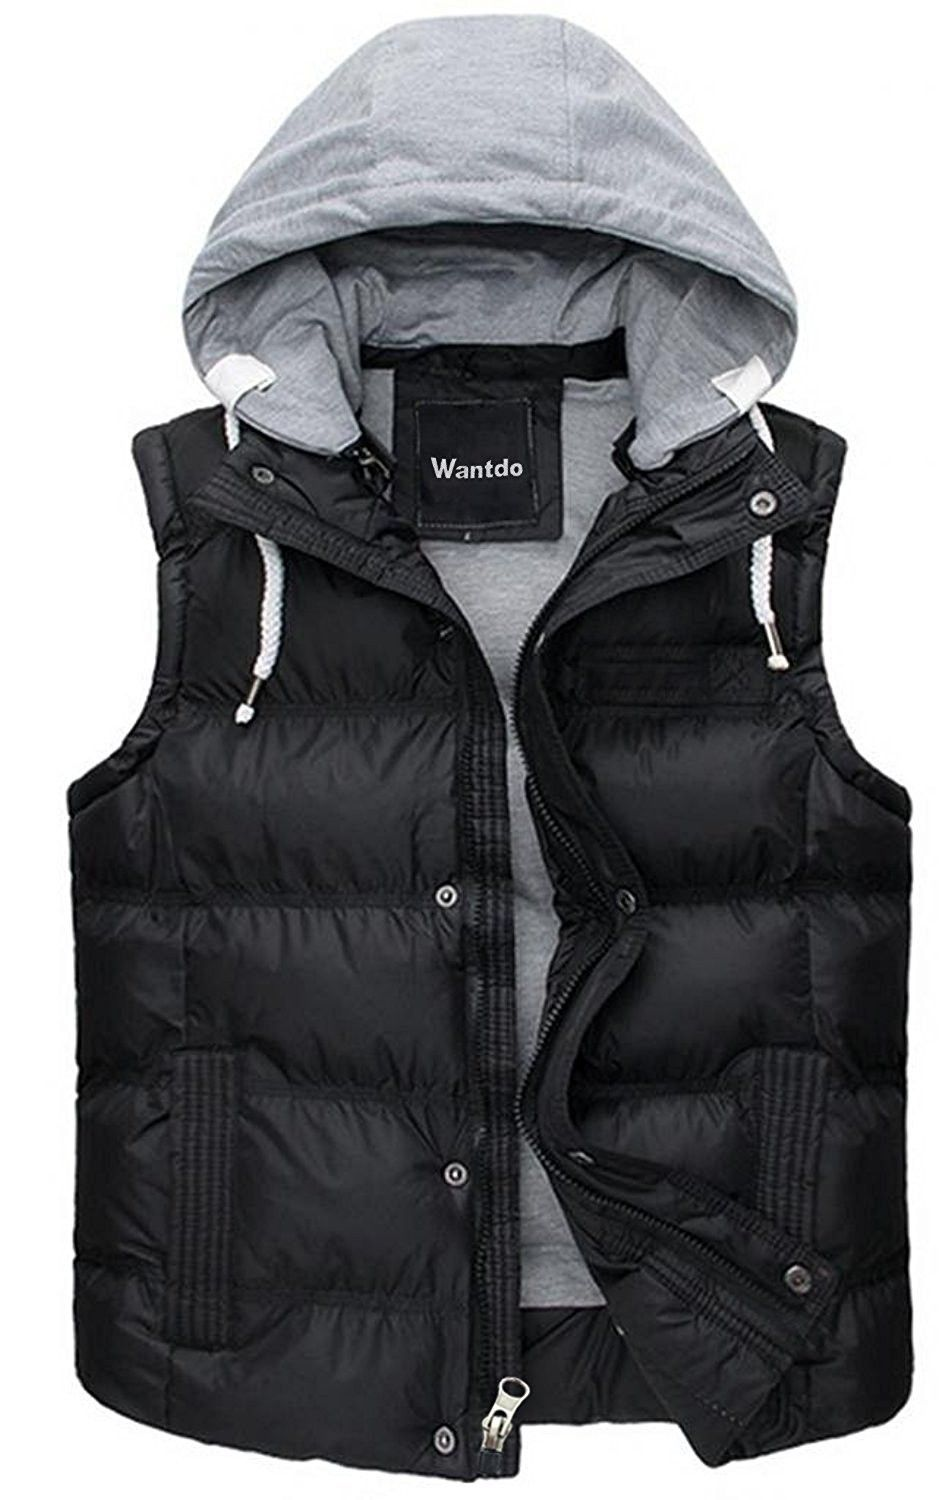 Kutook Winter Men/'s Warm Vest Outdoor Gilet with Removable Hood